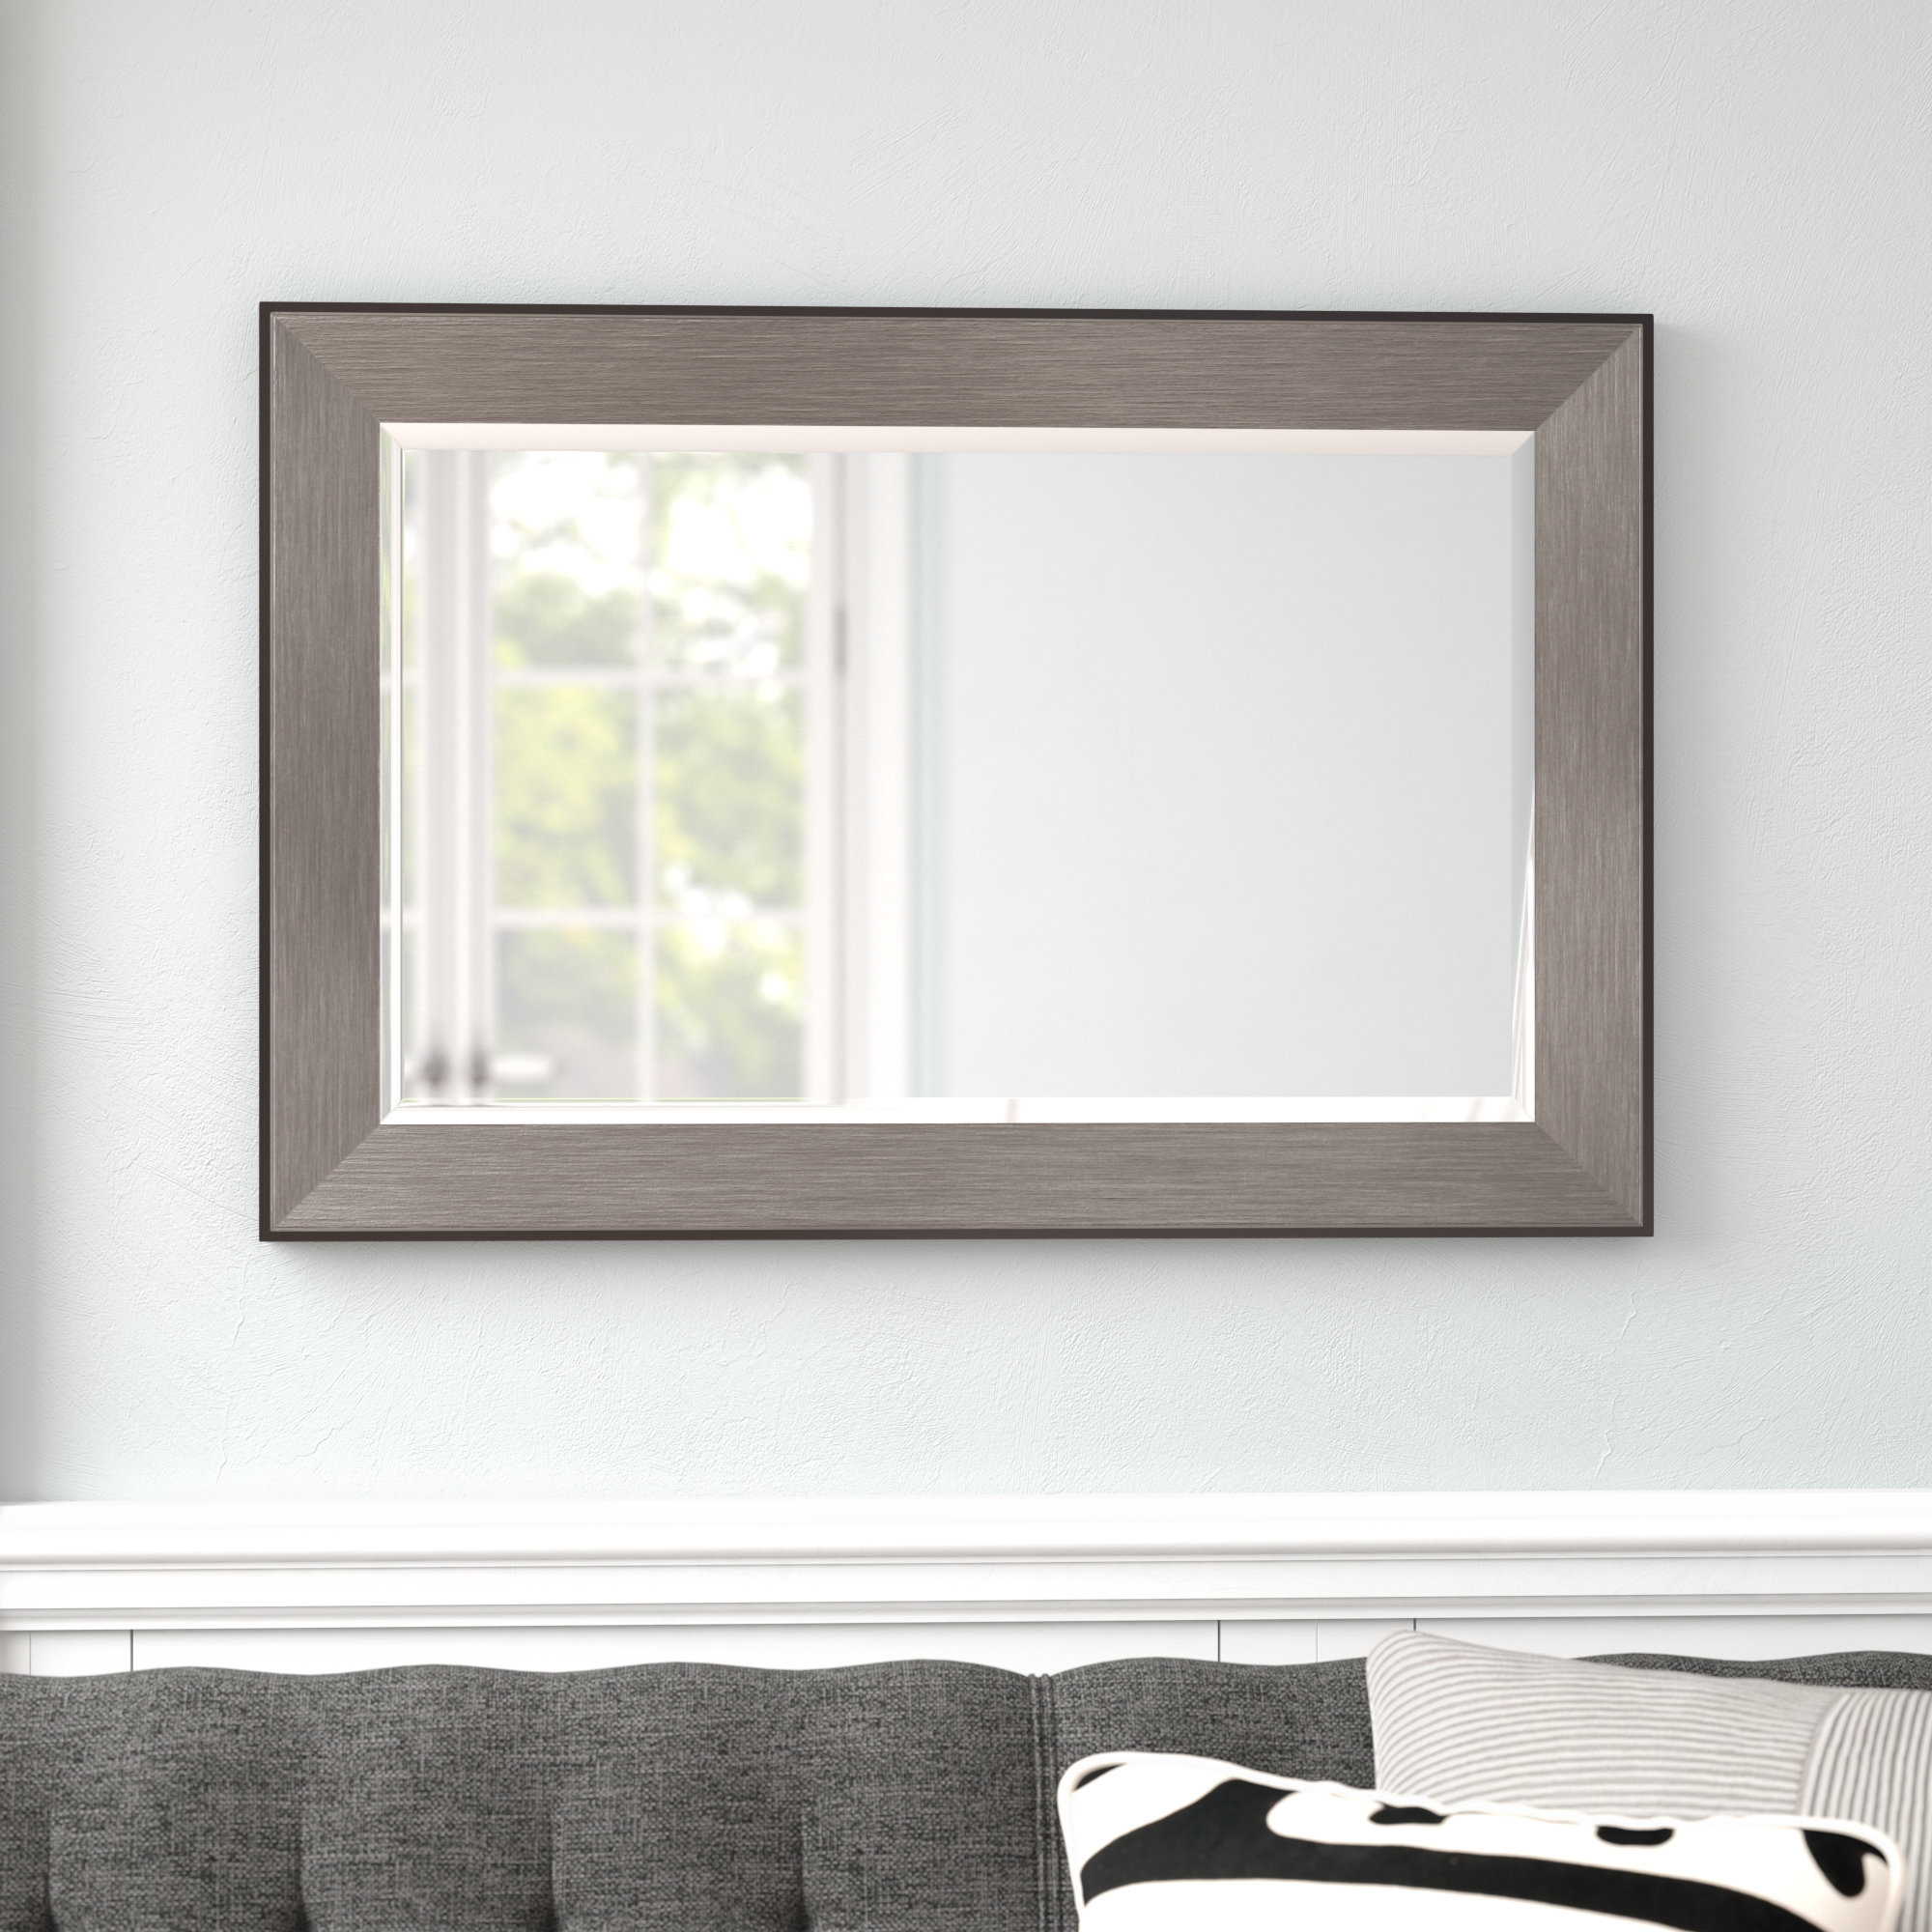 Rectangle Pewter Beveled Wall Mirror With Regard To Best And Newest Rectangle Pewter Beveled Wall Mirrors (Gallery 2 of 20)